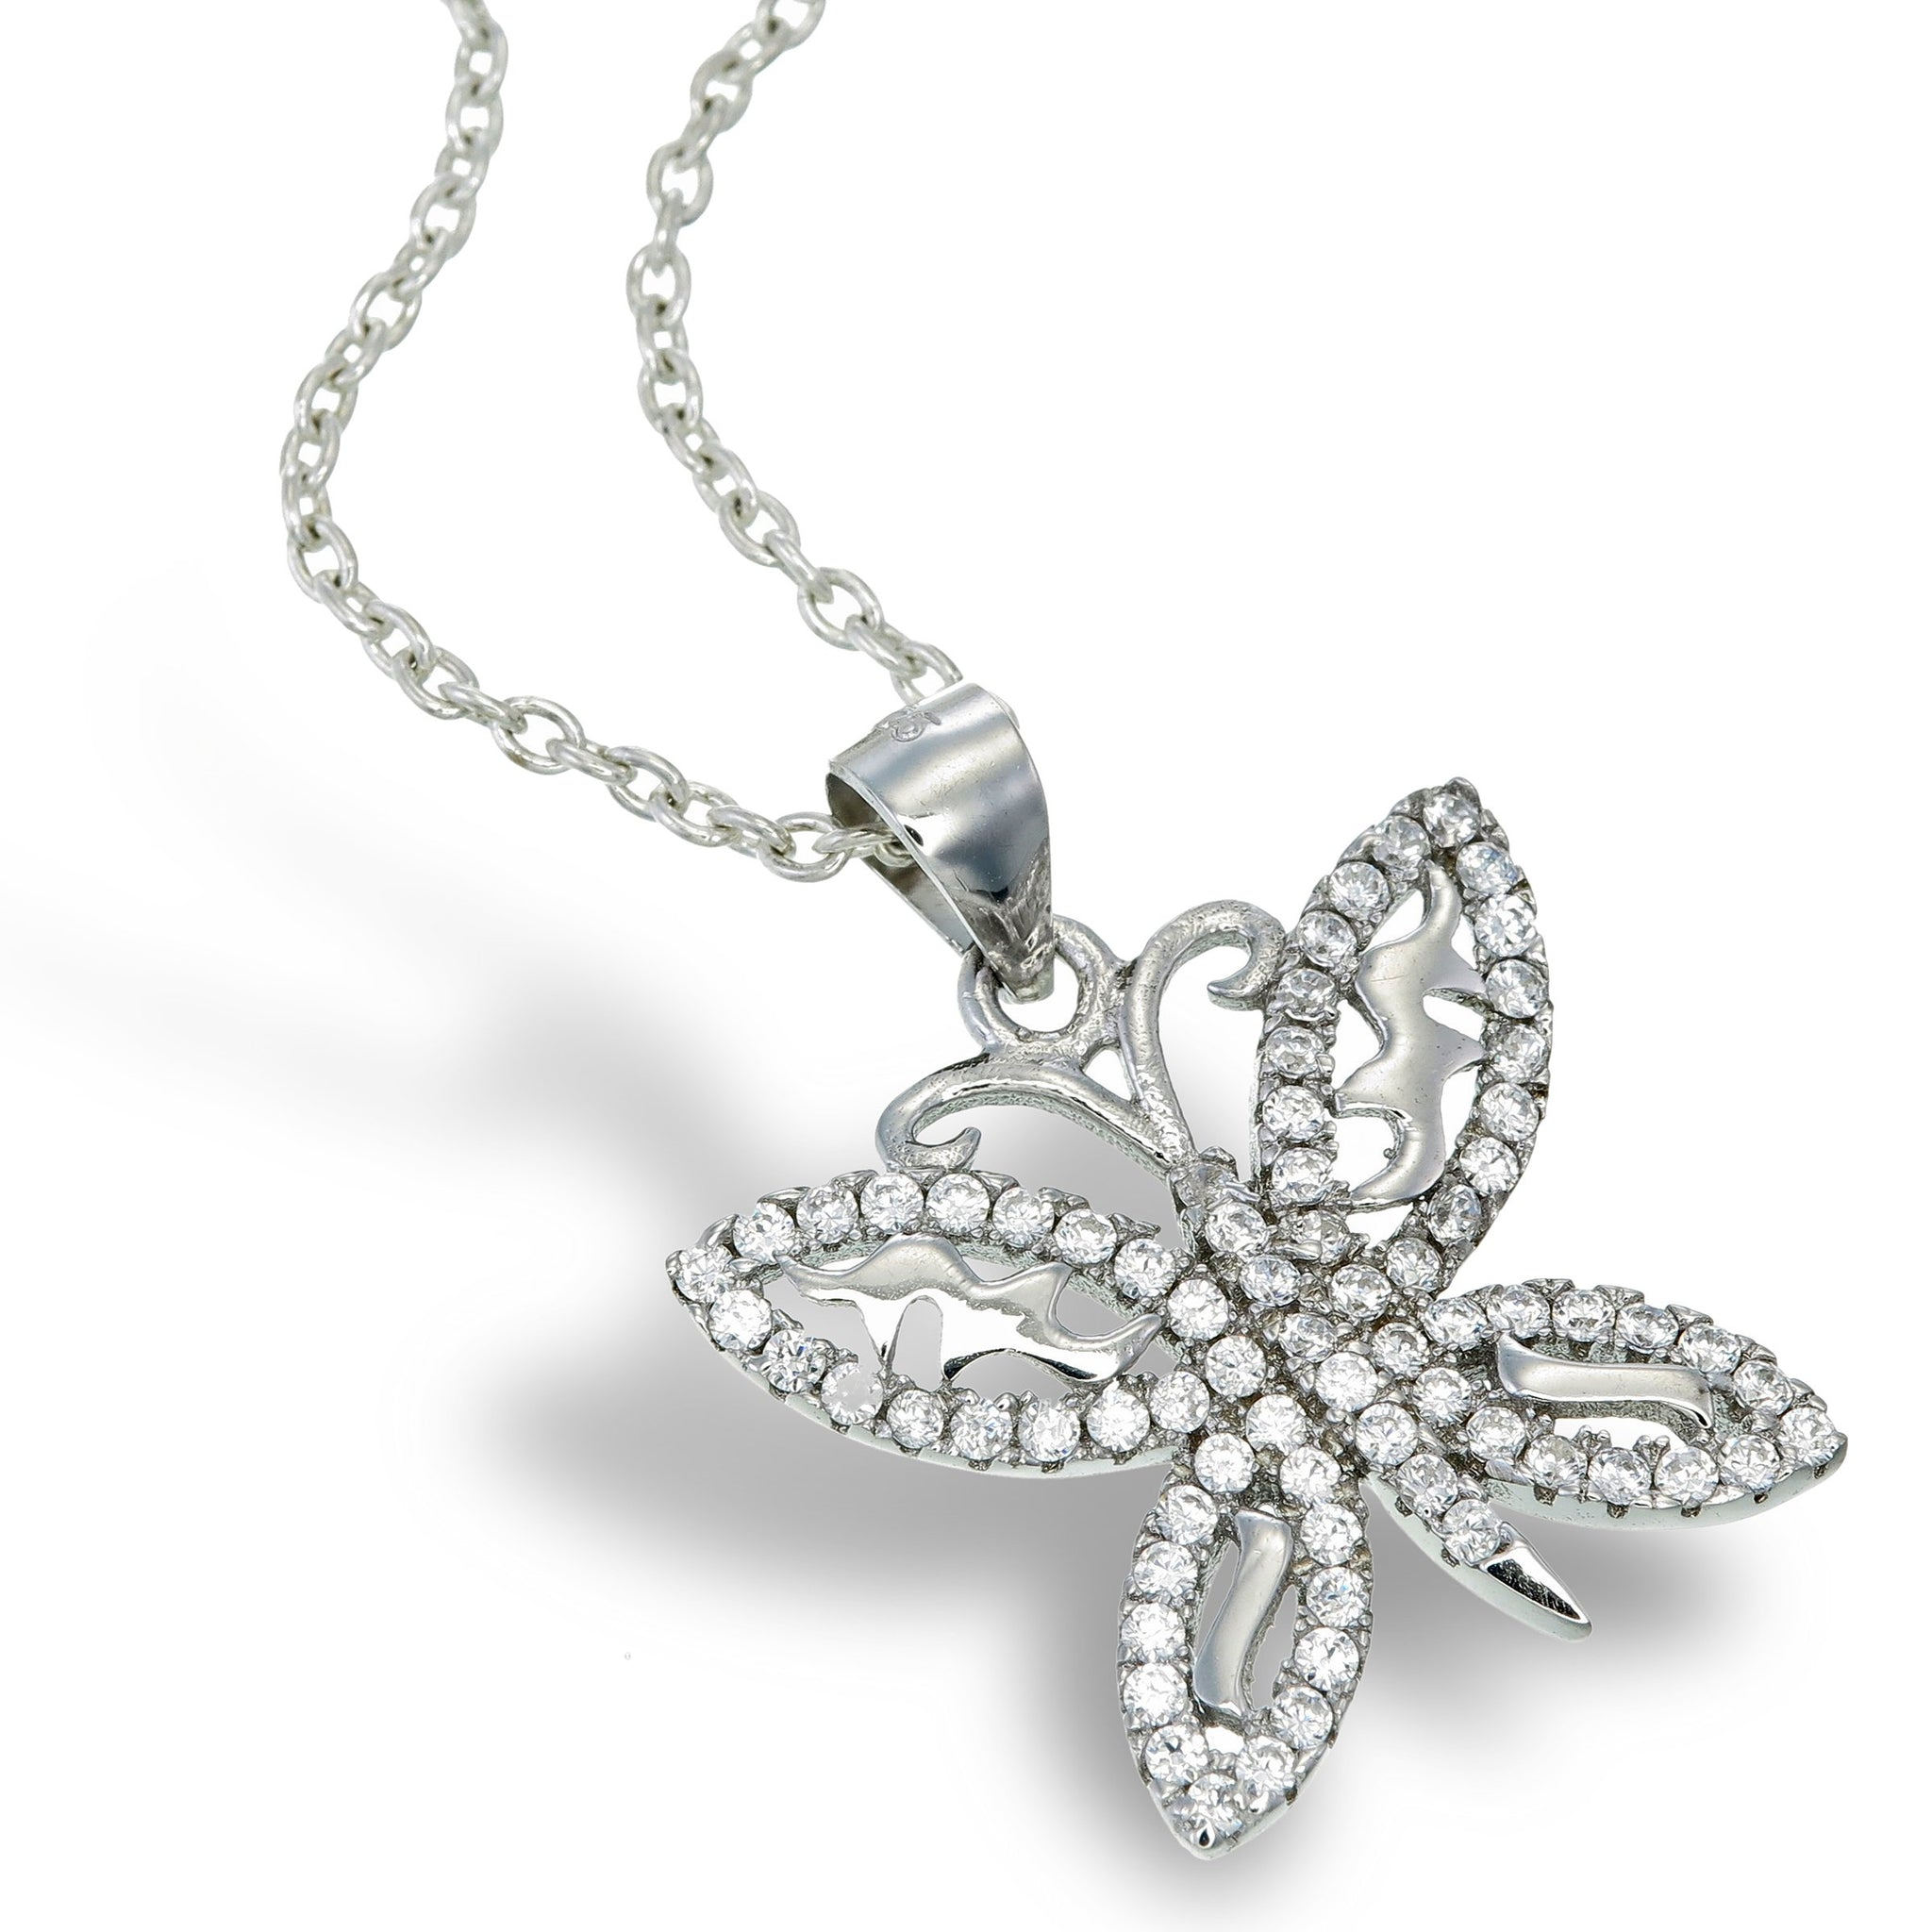 925 sterling silver butterfly pendant with cubic zirconia. (ZJP2331)